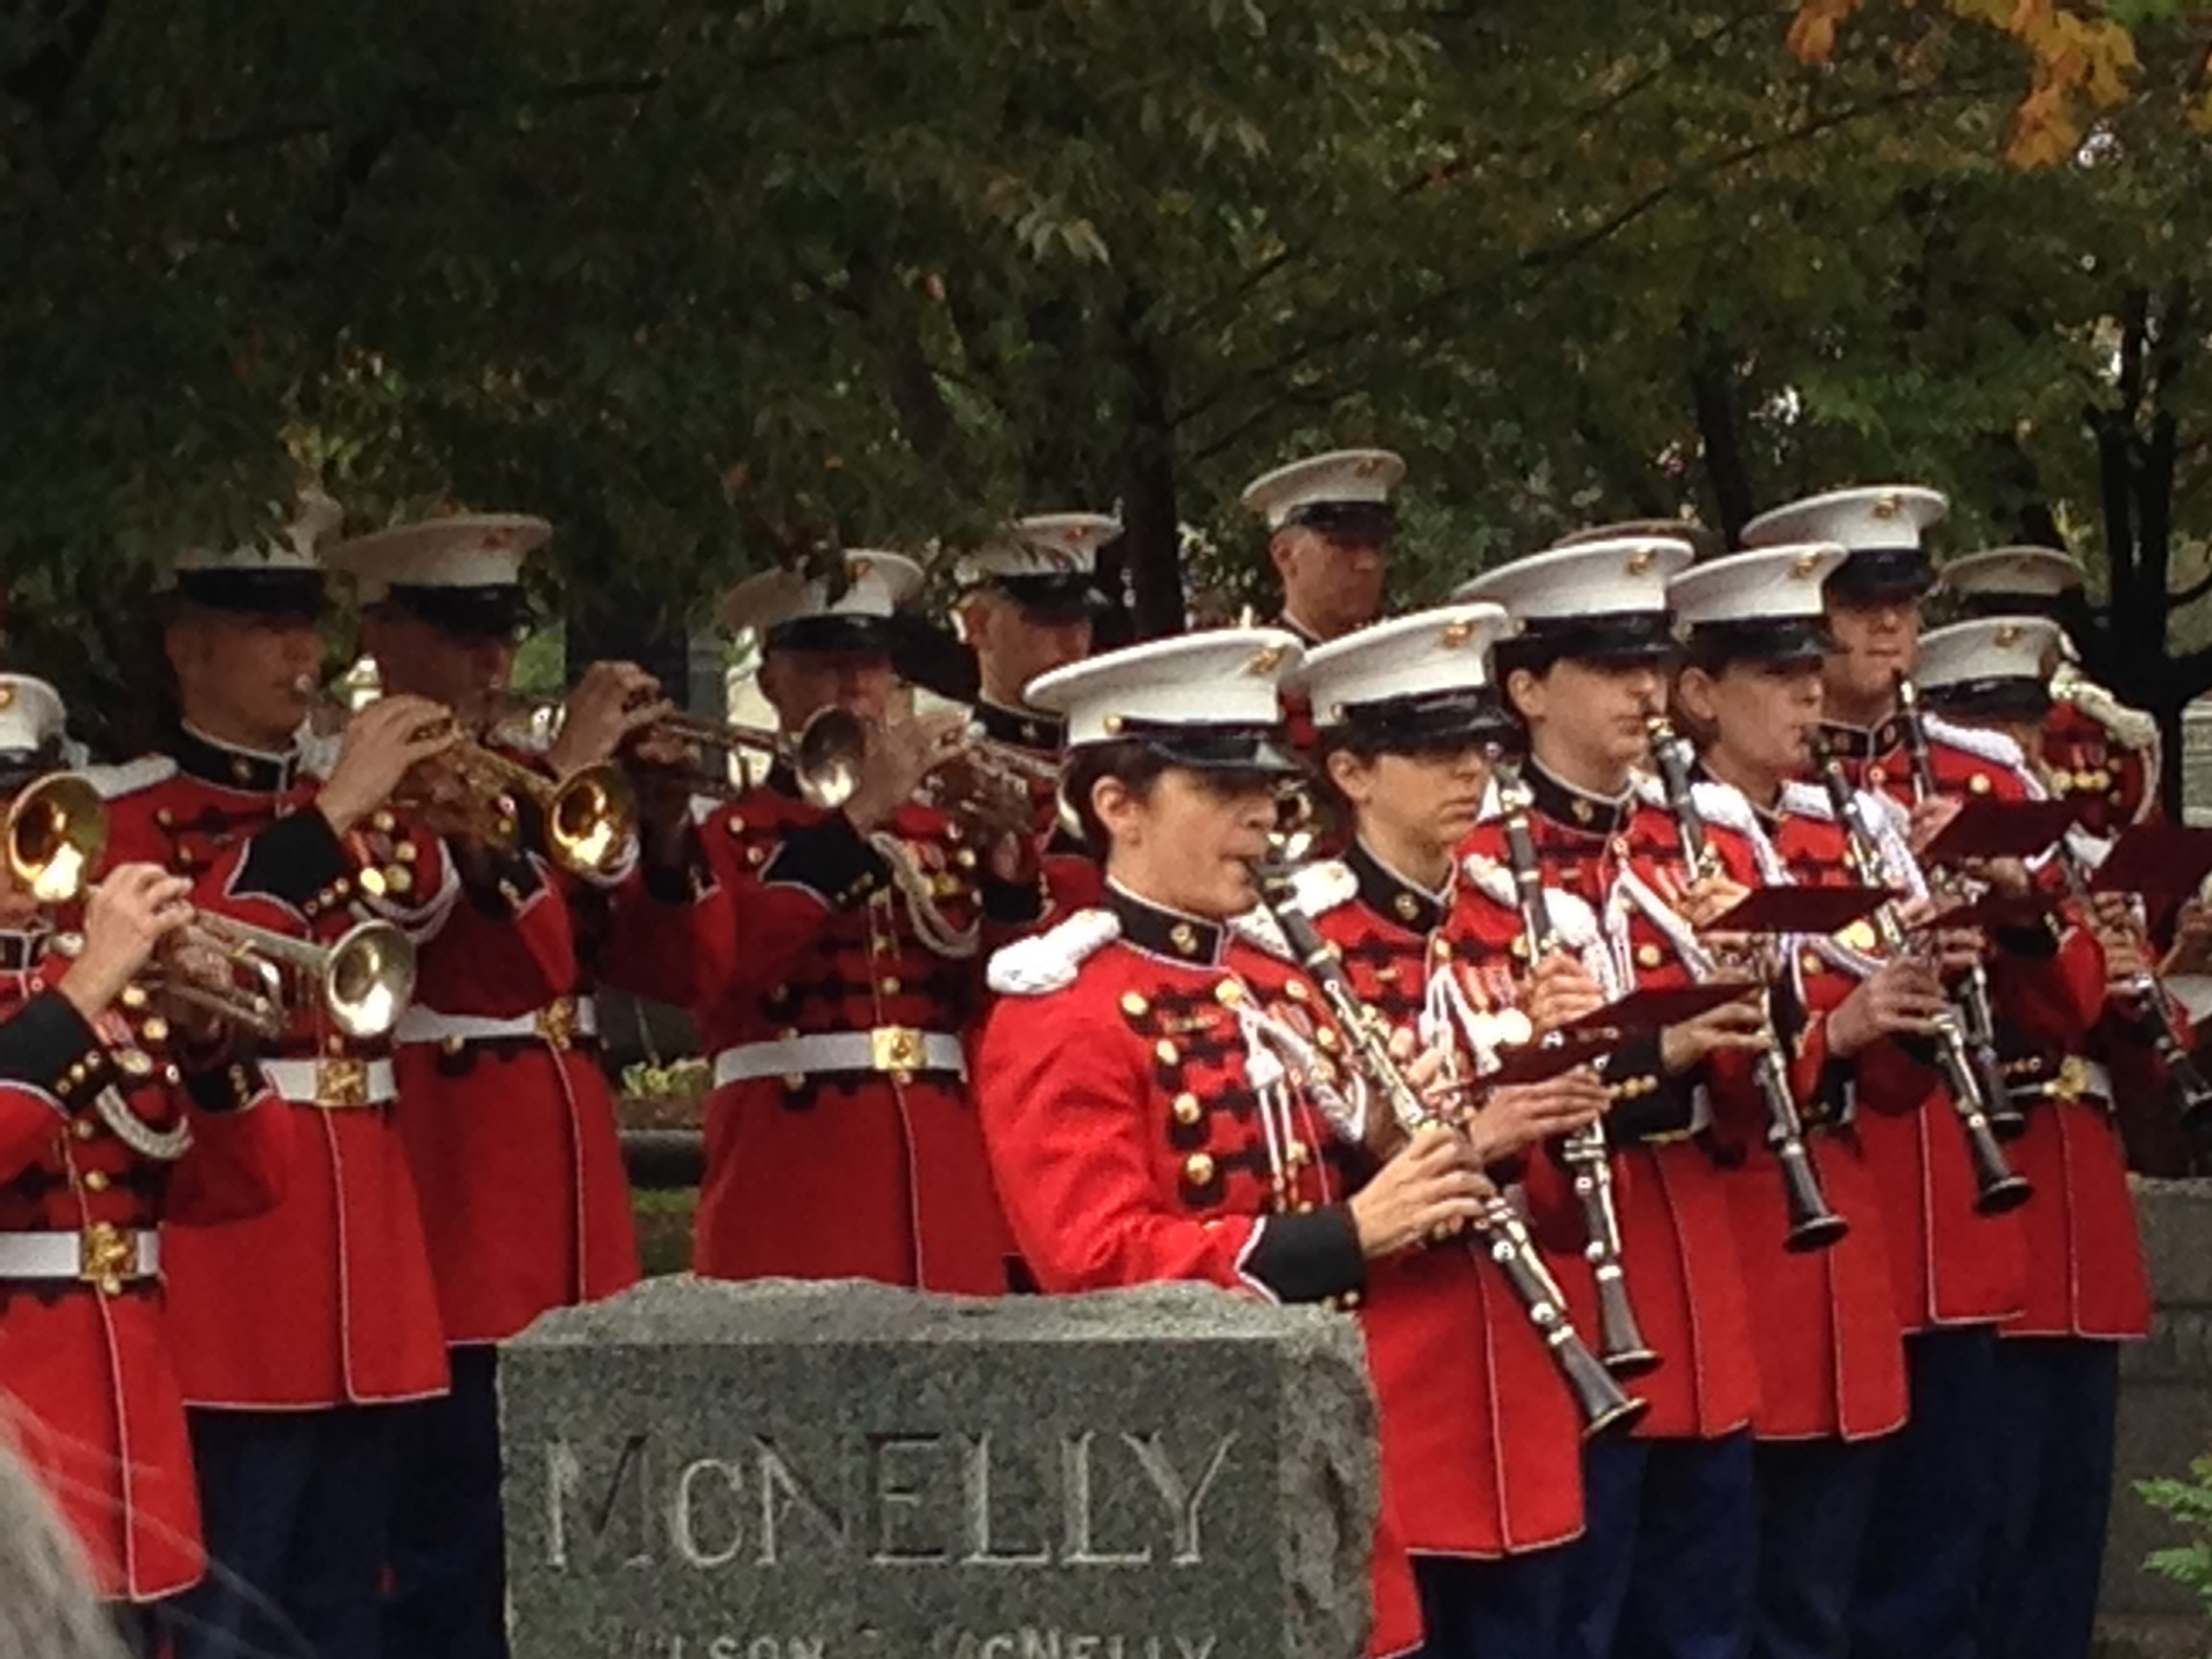 Then the US Marine Bland played some familiar Sousa marches.